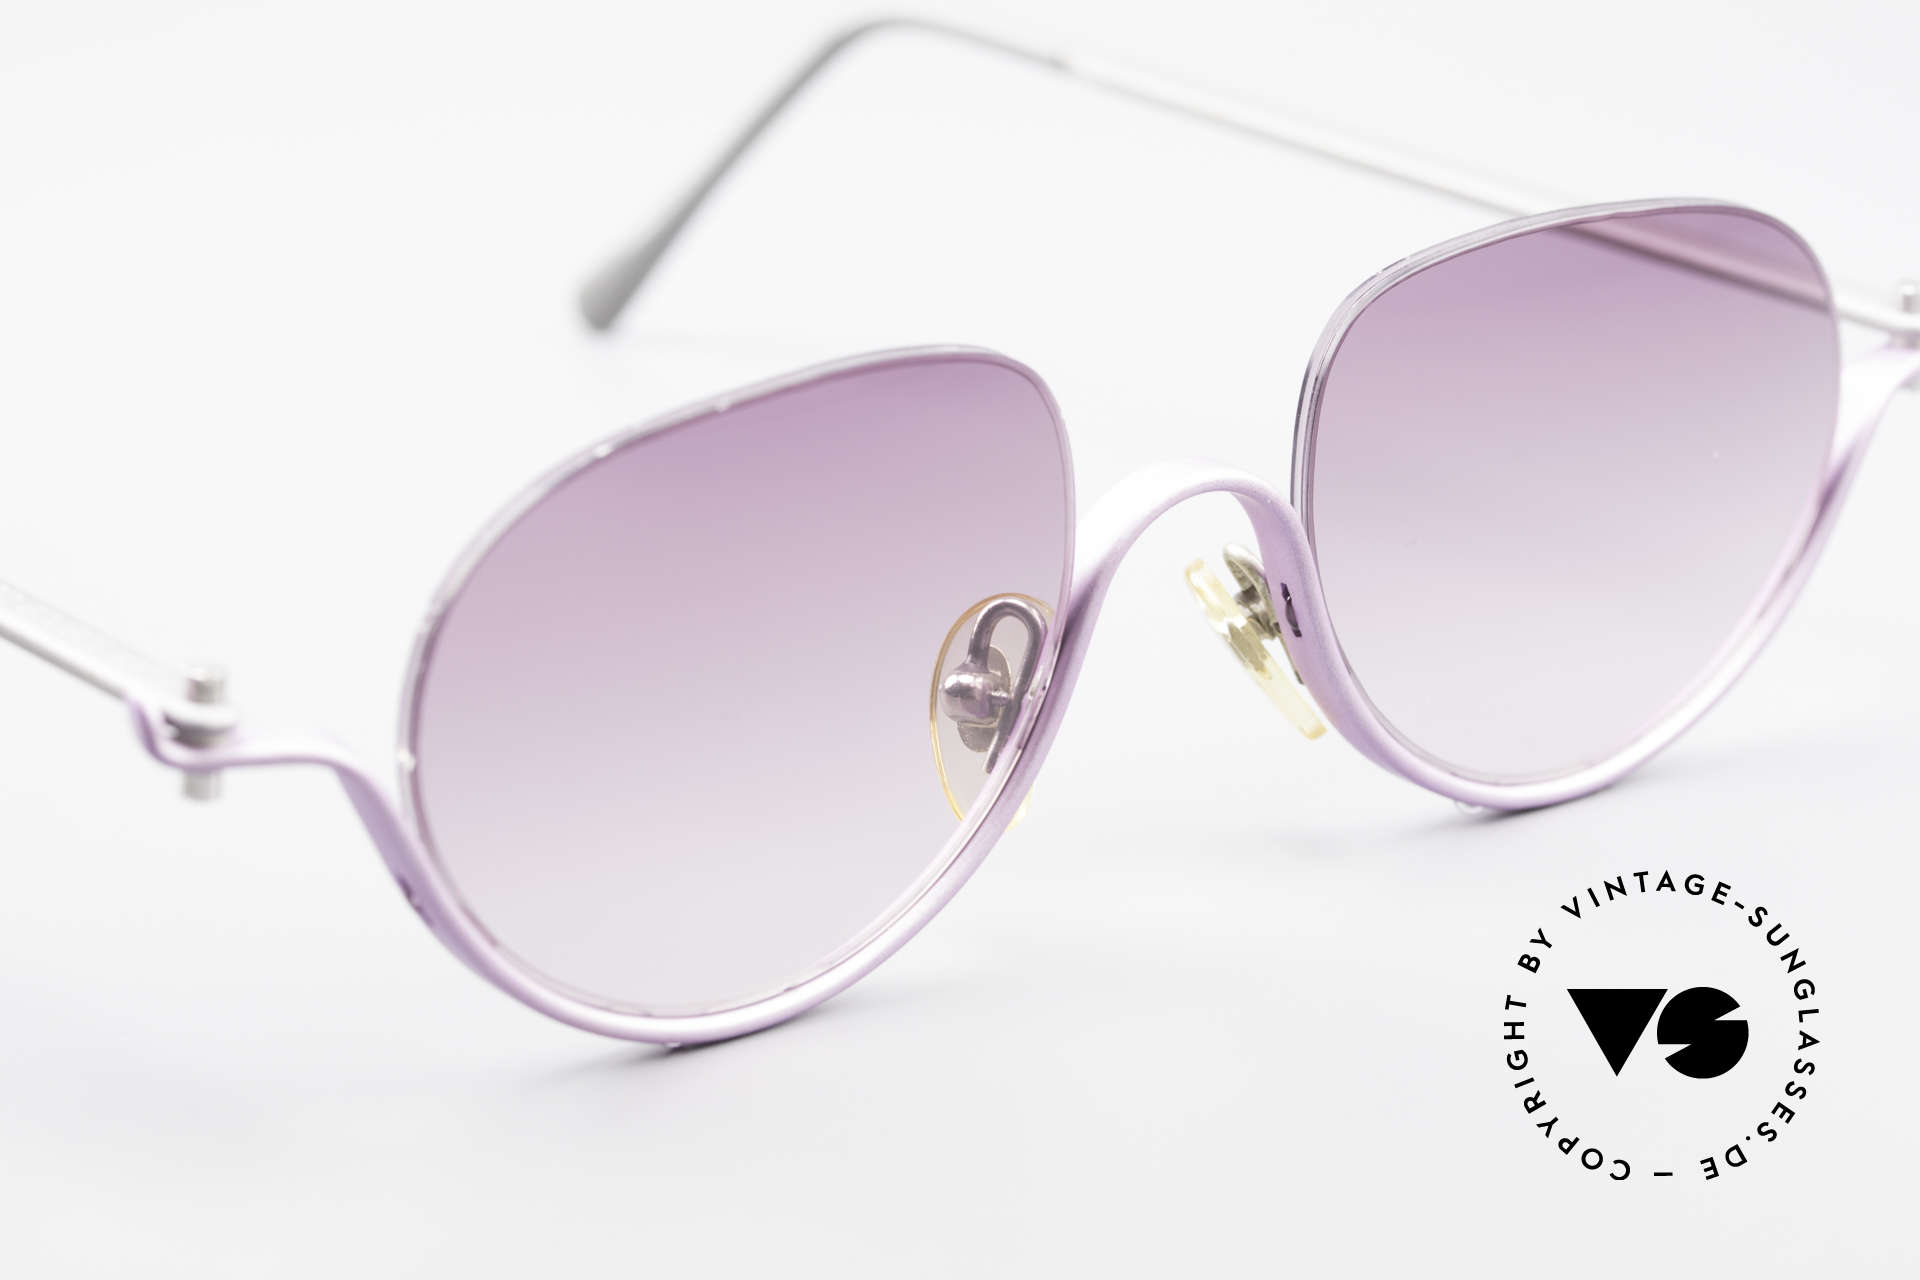 ProDesign No8 Gail Spence Design Shades, ultra RARE designer sunglasses from the mid 1990's, Made for Women